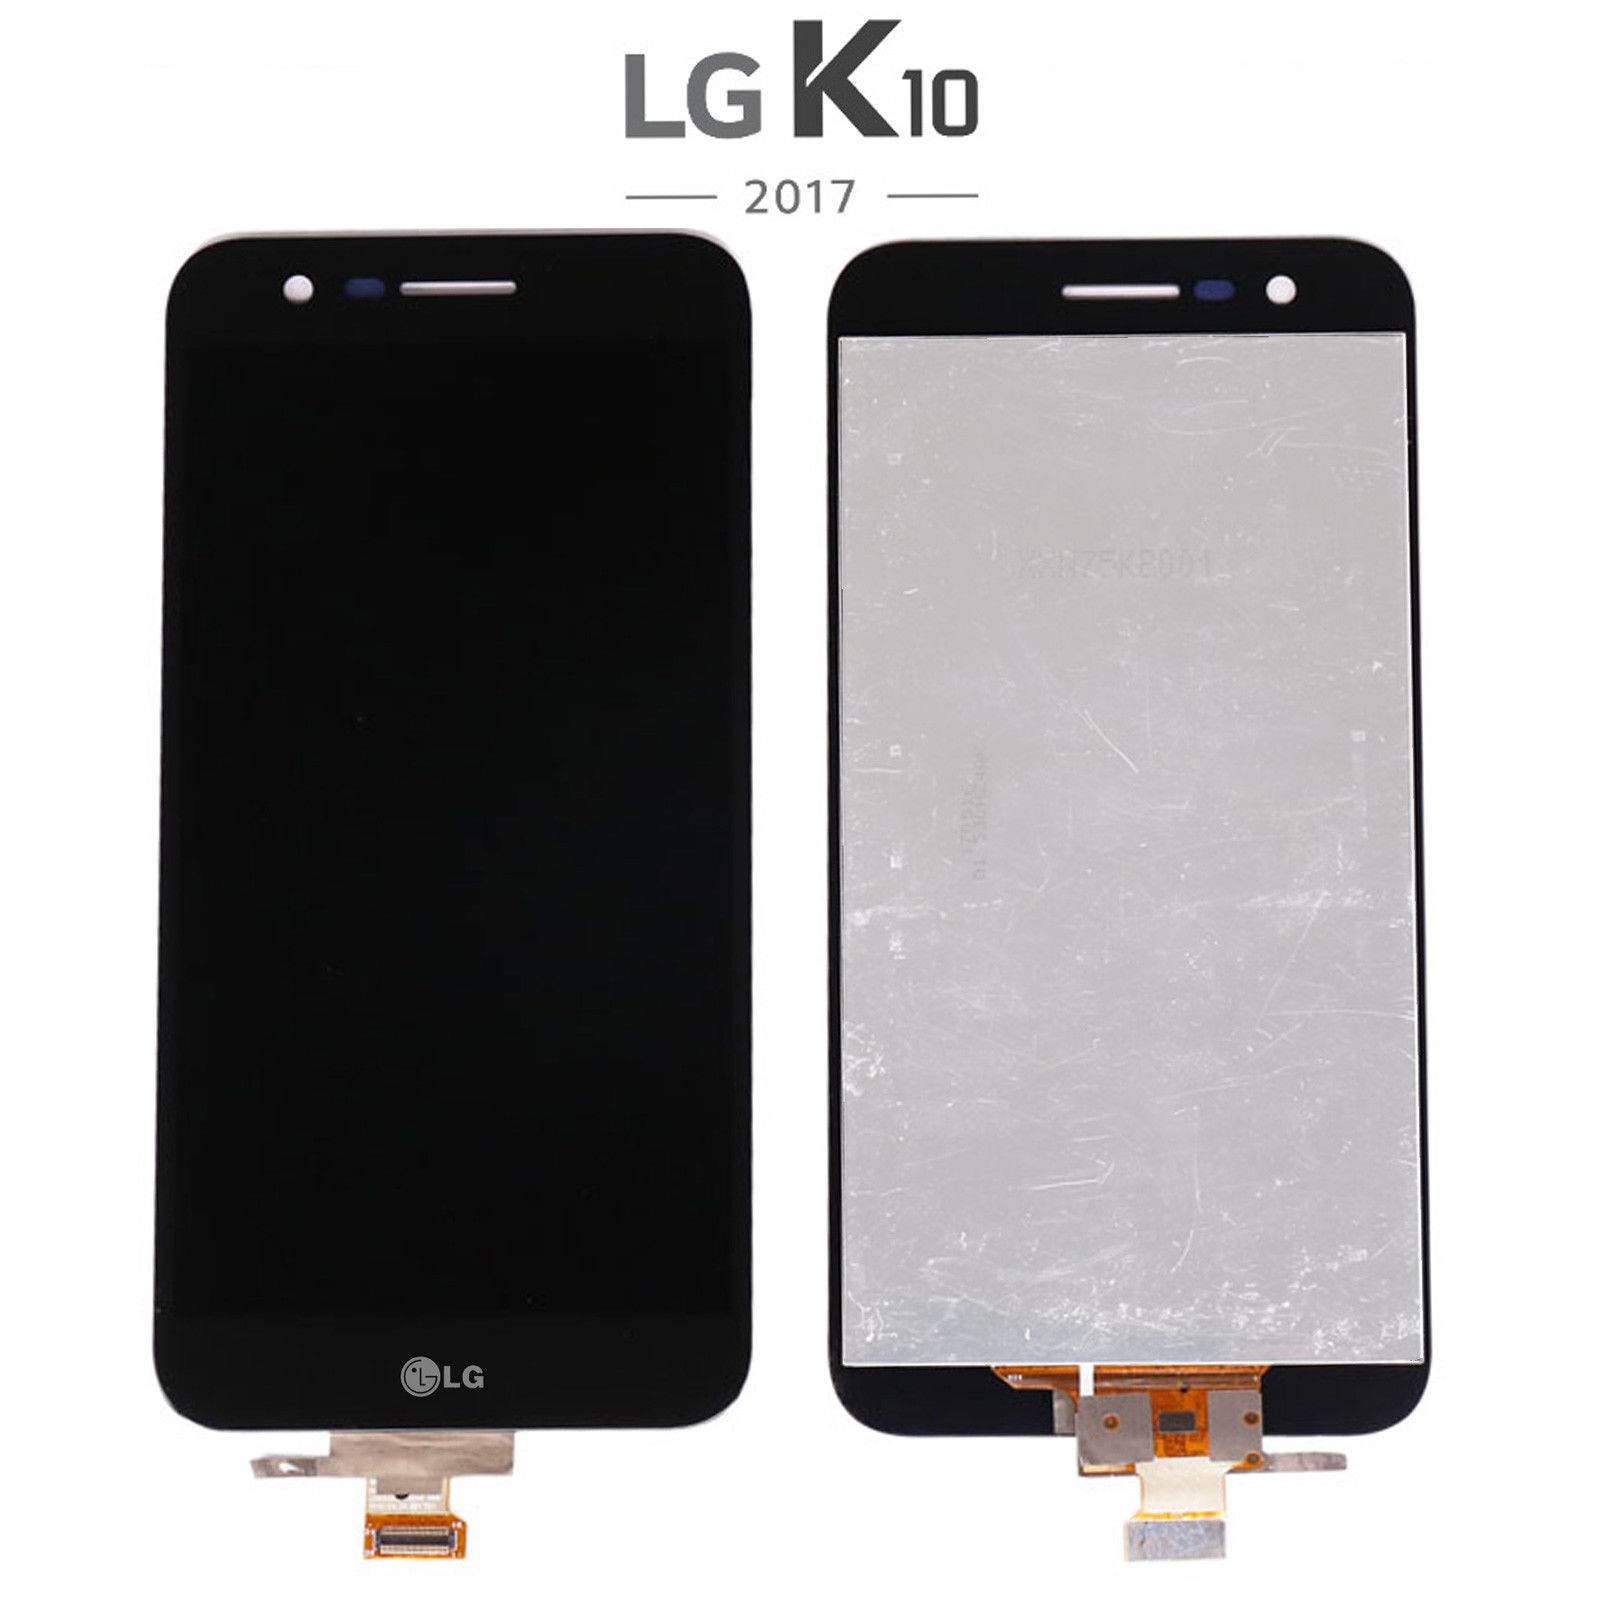 DISPLAY LCD E TOUCH SCREEN LG K10 2017 M250 M250N NERO BLACK